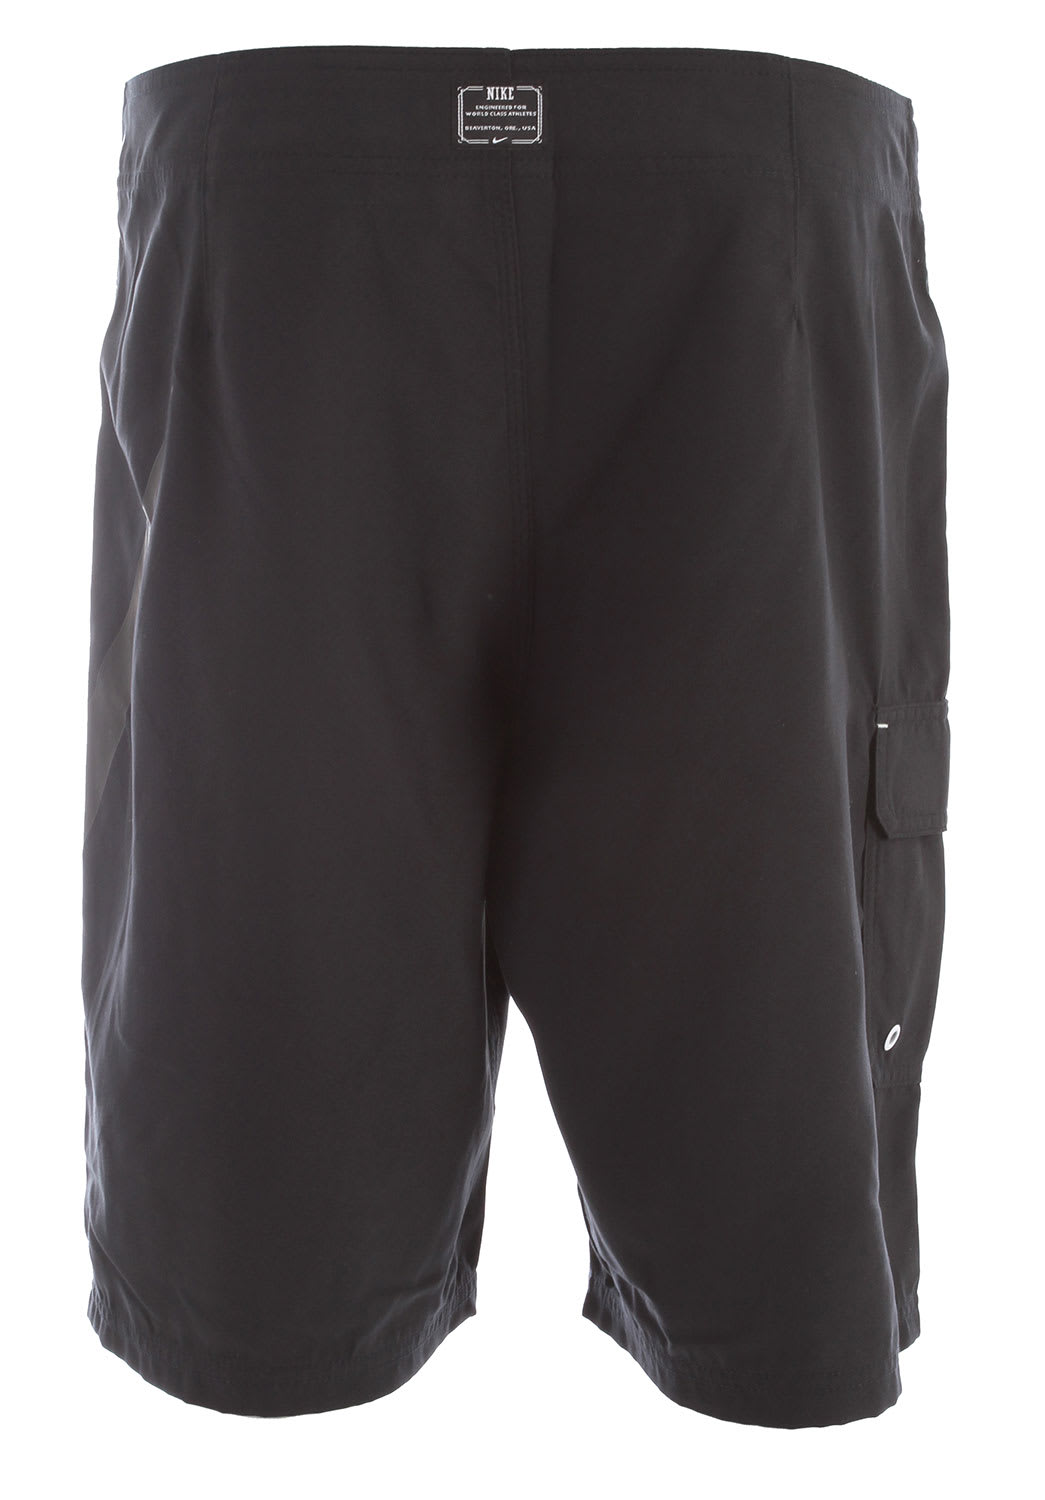 On Sale Nike Scout Swoosh 21In Boardshorts up to 60% off